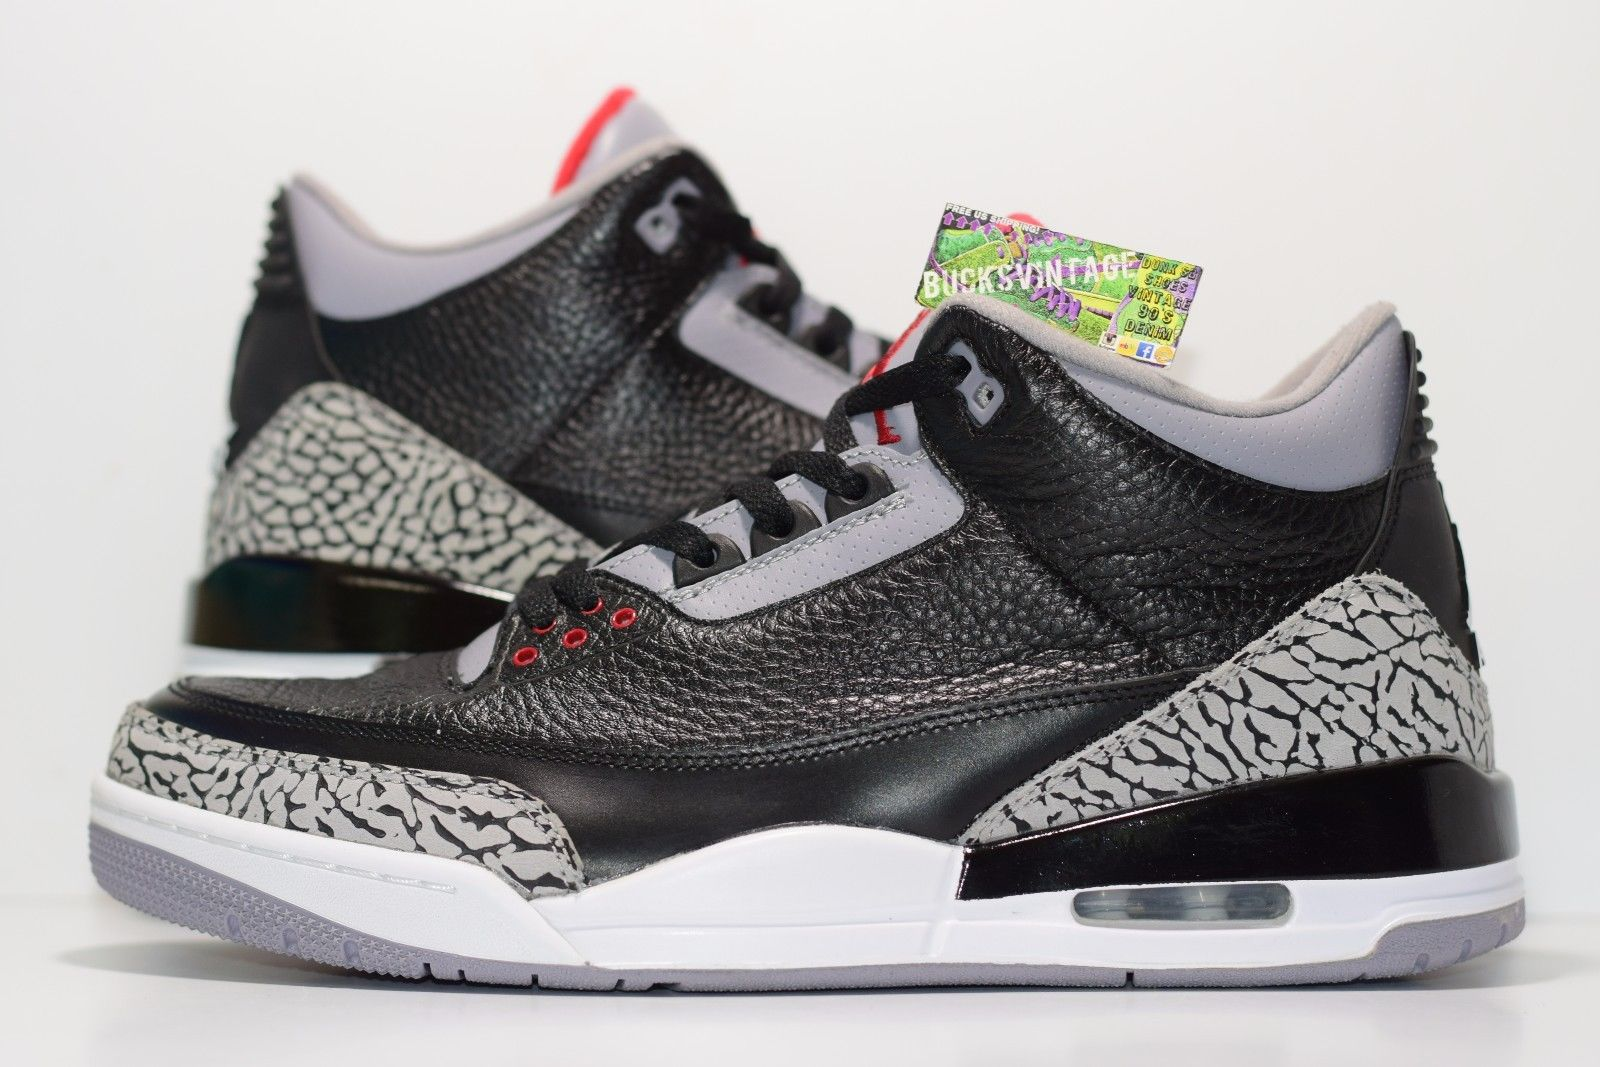 new arrival 97173 7e1c4 Size 11.5 | 2011 Nike Air Jordan 3 Retro Black Cement 36064-010 from  BucksVintage